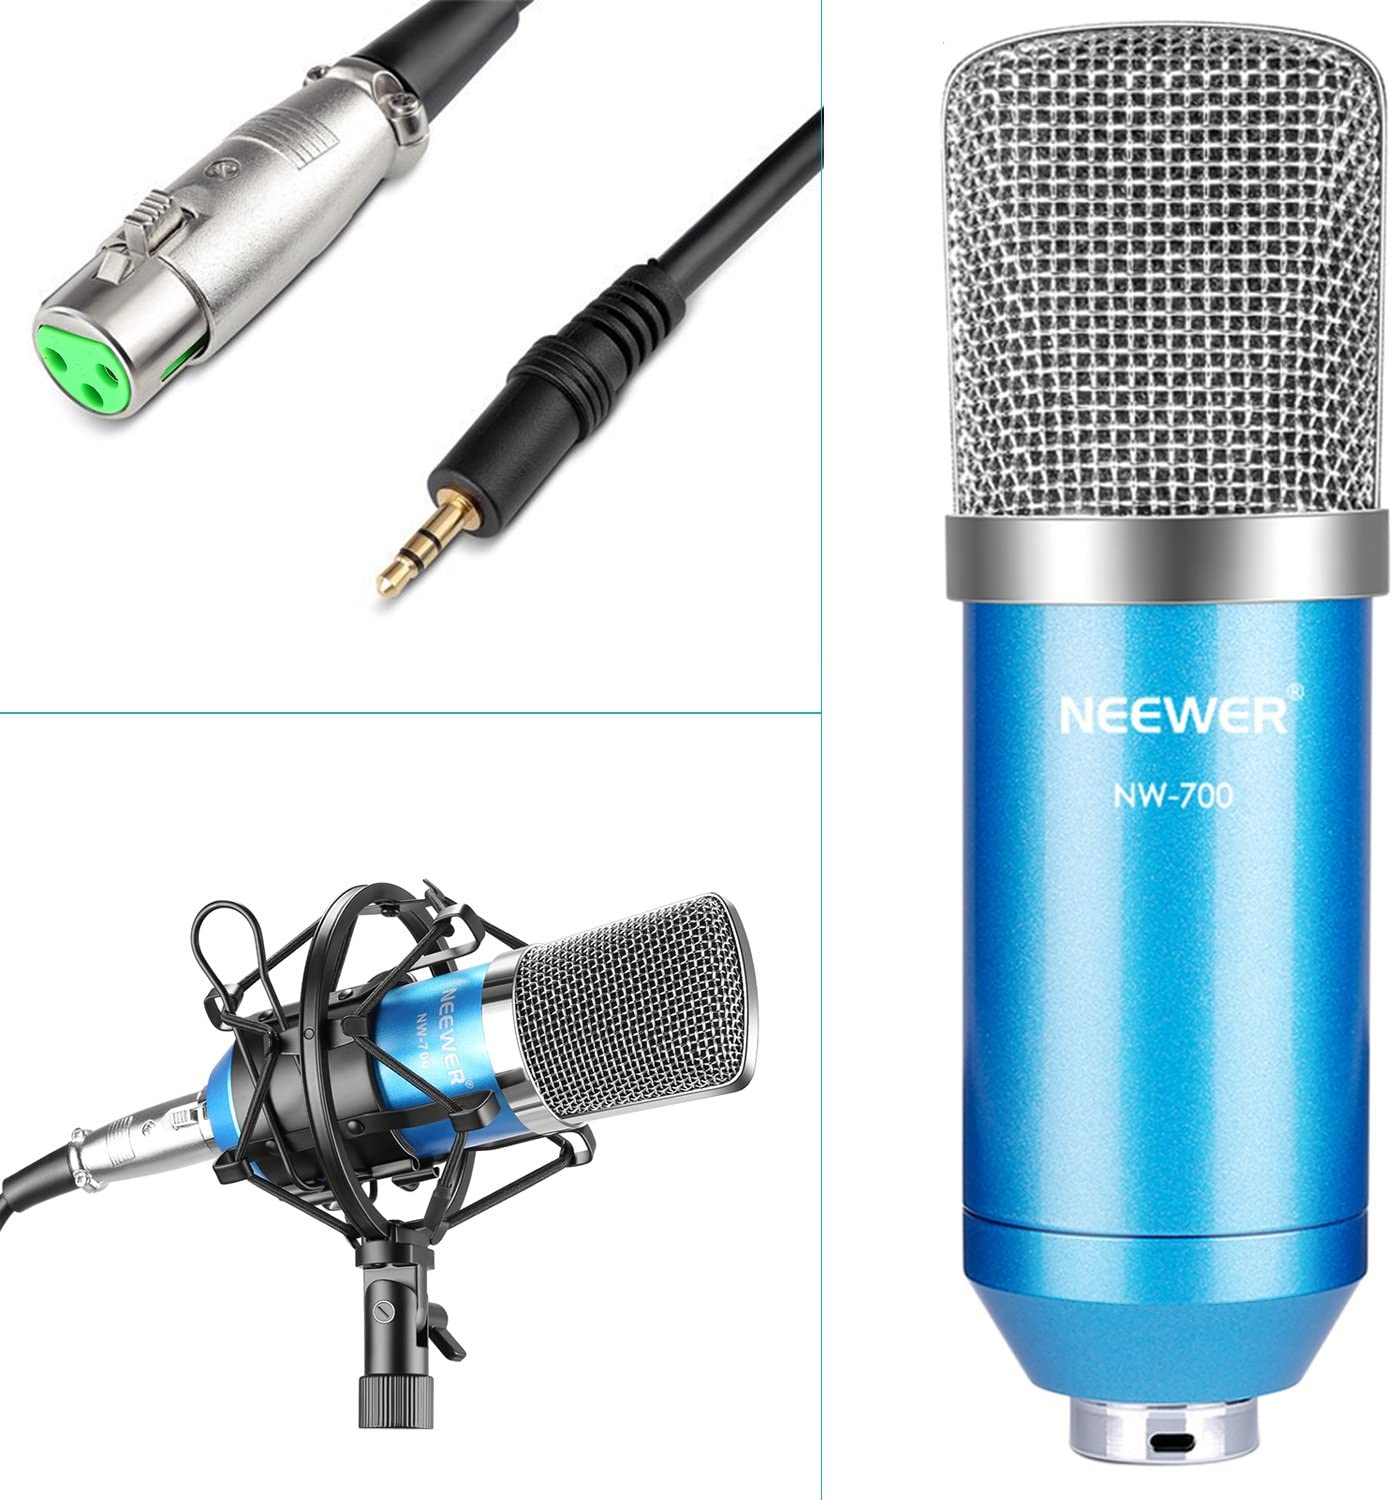 Neewer NW-700 Blue Professional Condenser Microphone /& NW-35 Blue Suspension Boom Scissor Arm Stand with XLR Cable and Mounting Clamp /& NW-3 Pop Filter /& 48V Phantom Power Supply with Adapter Kit